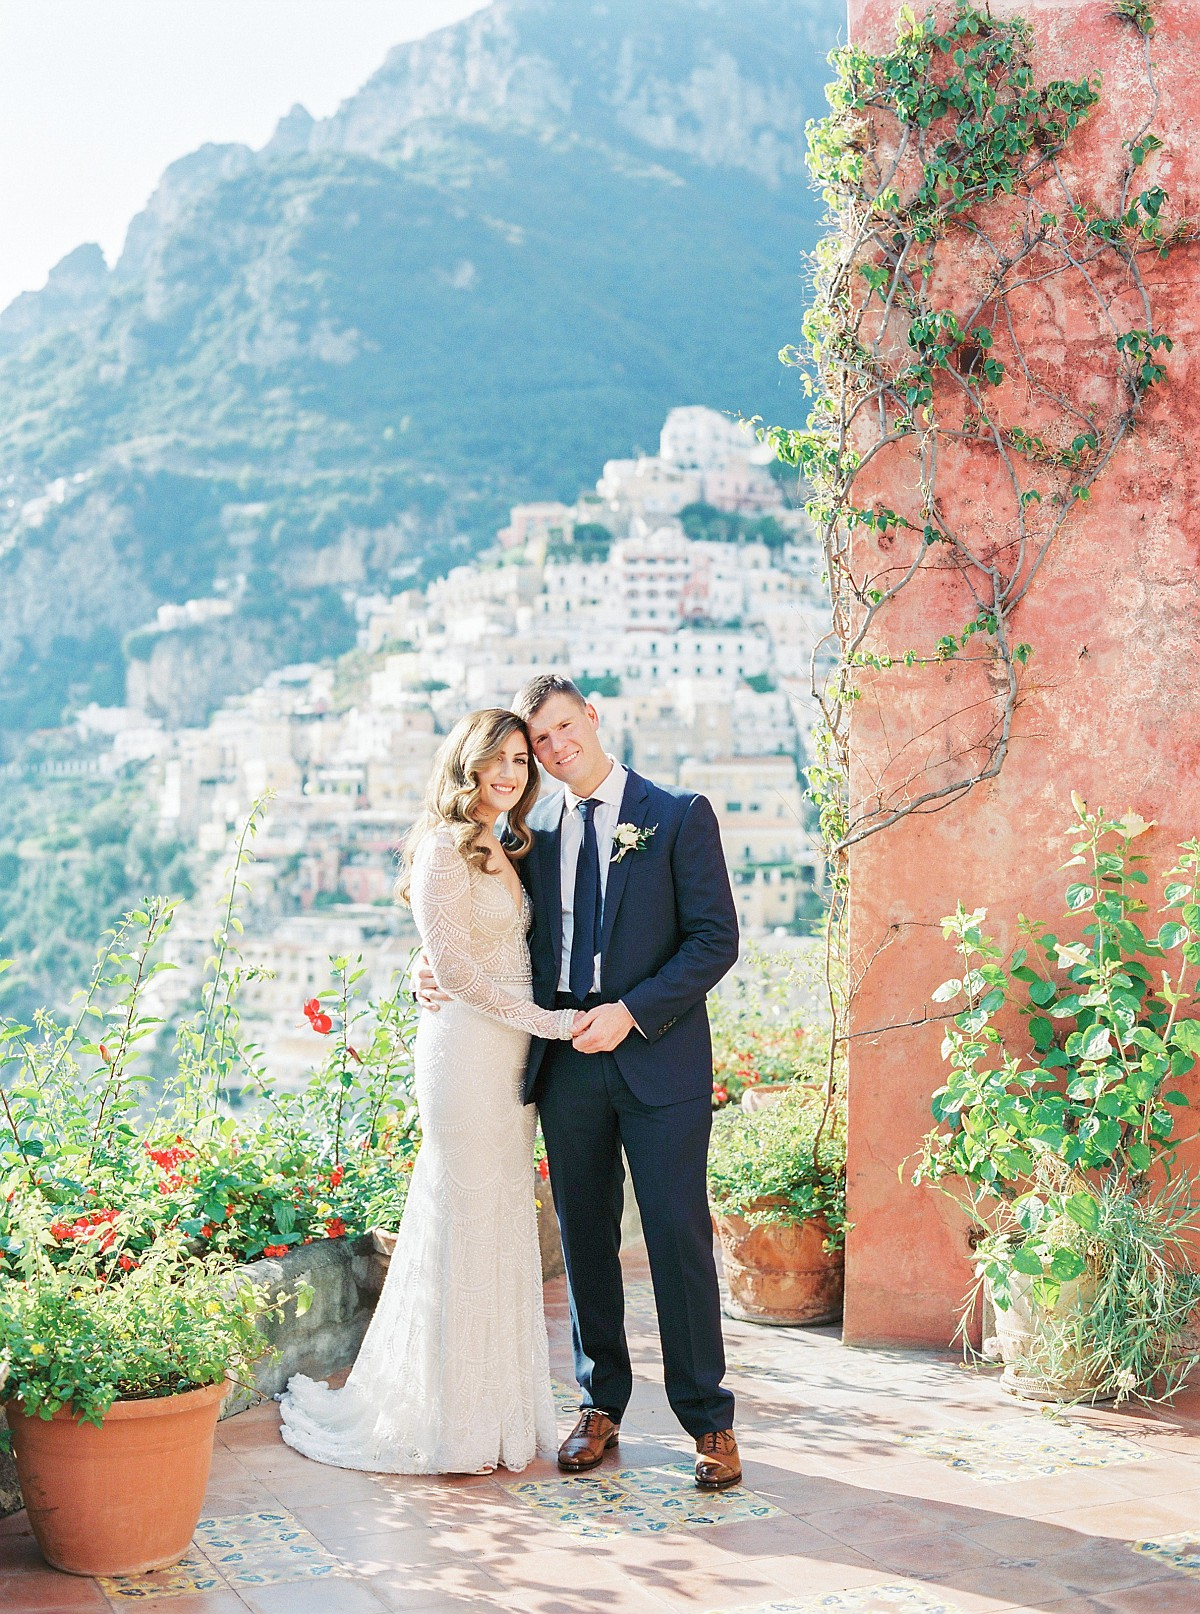 Intimate Micro Wedding on the Cliffs of Positano